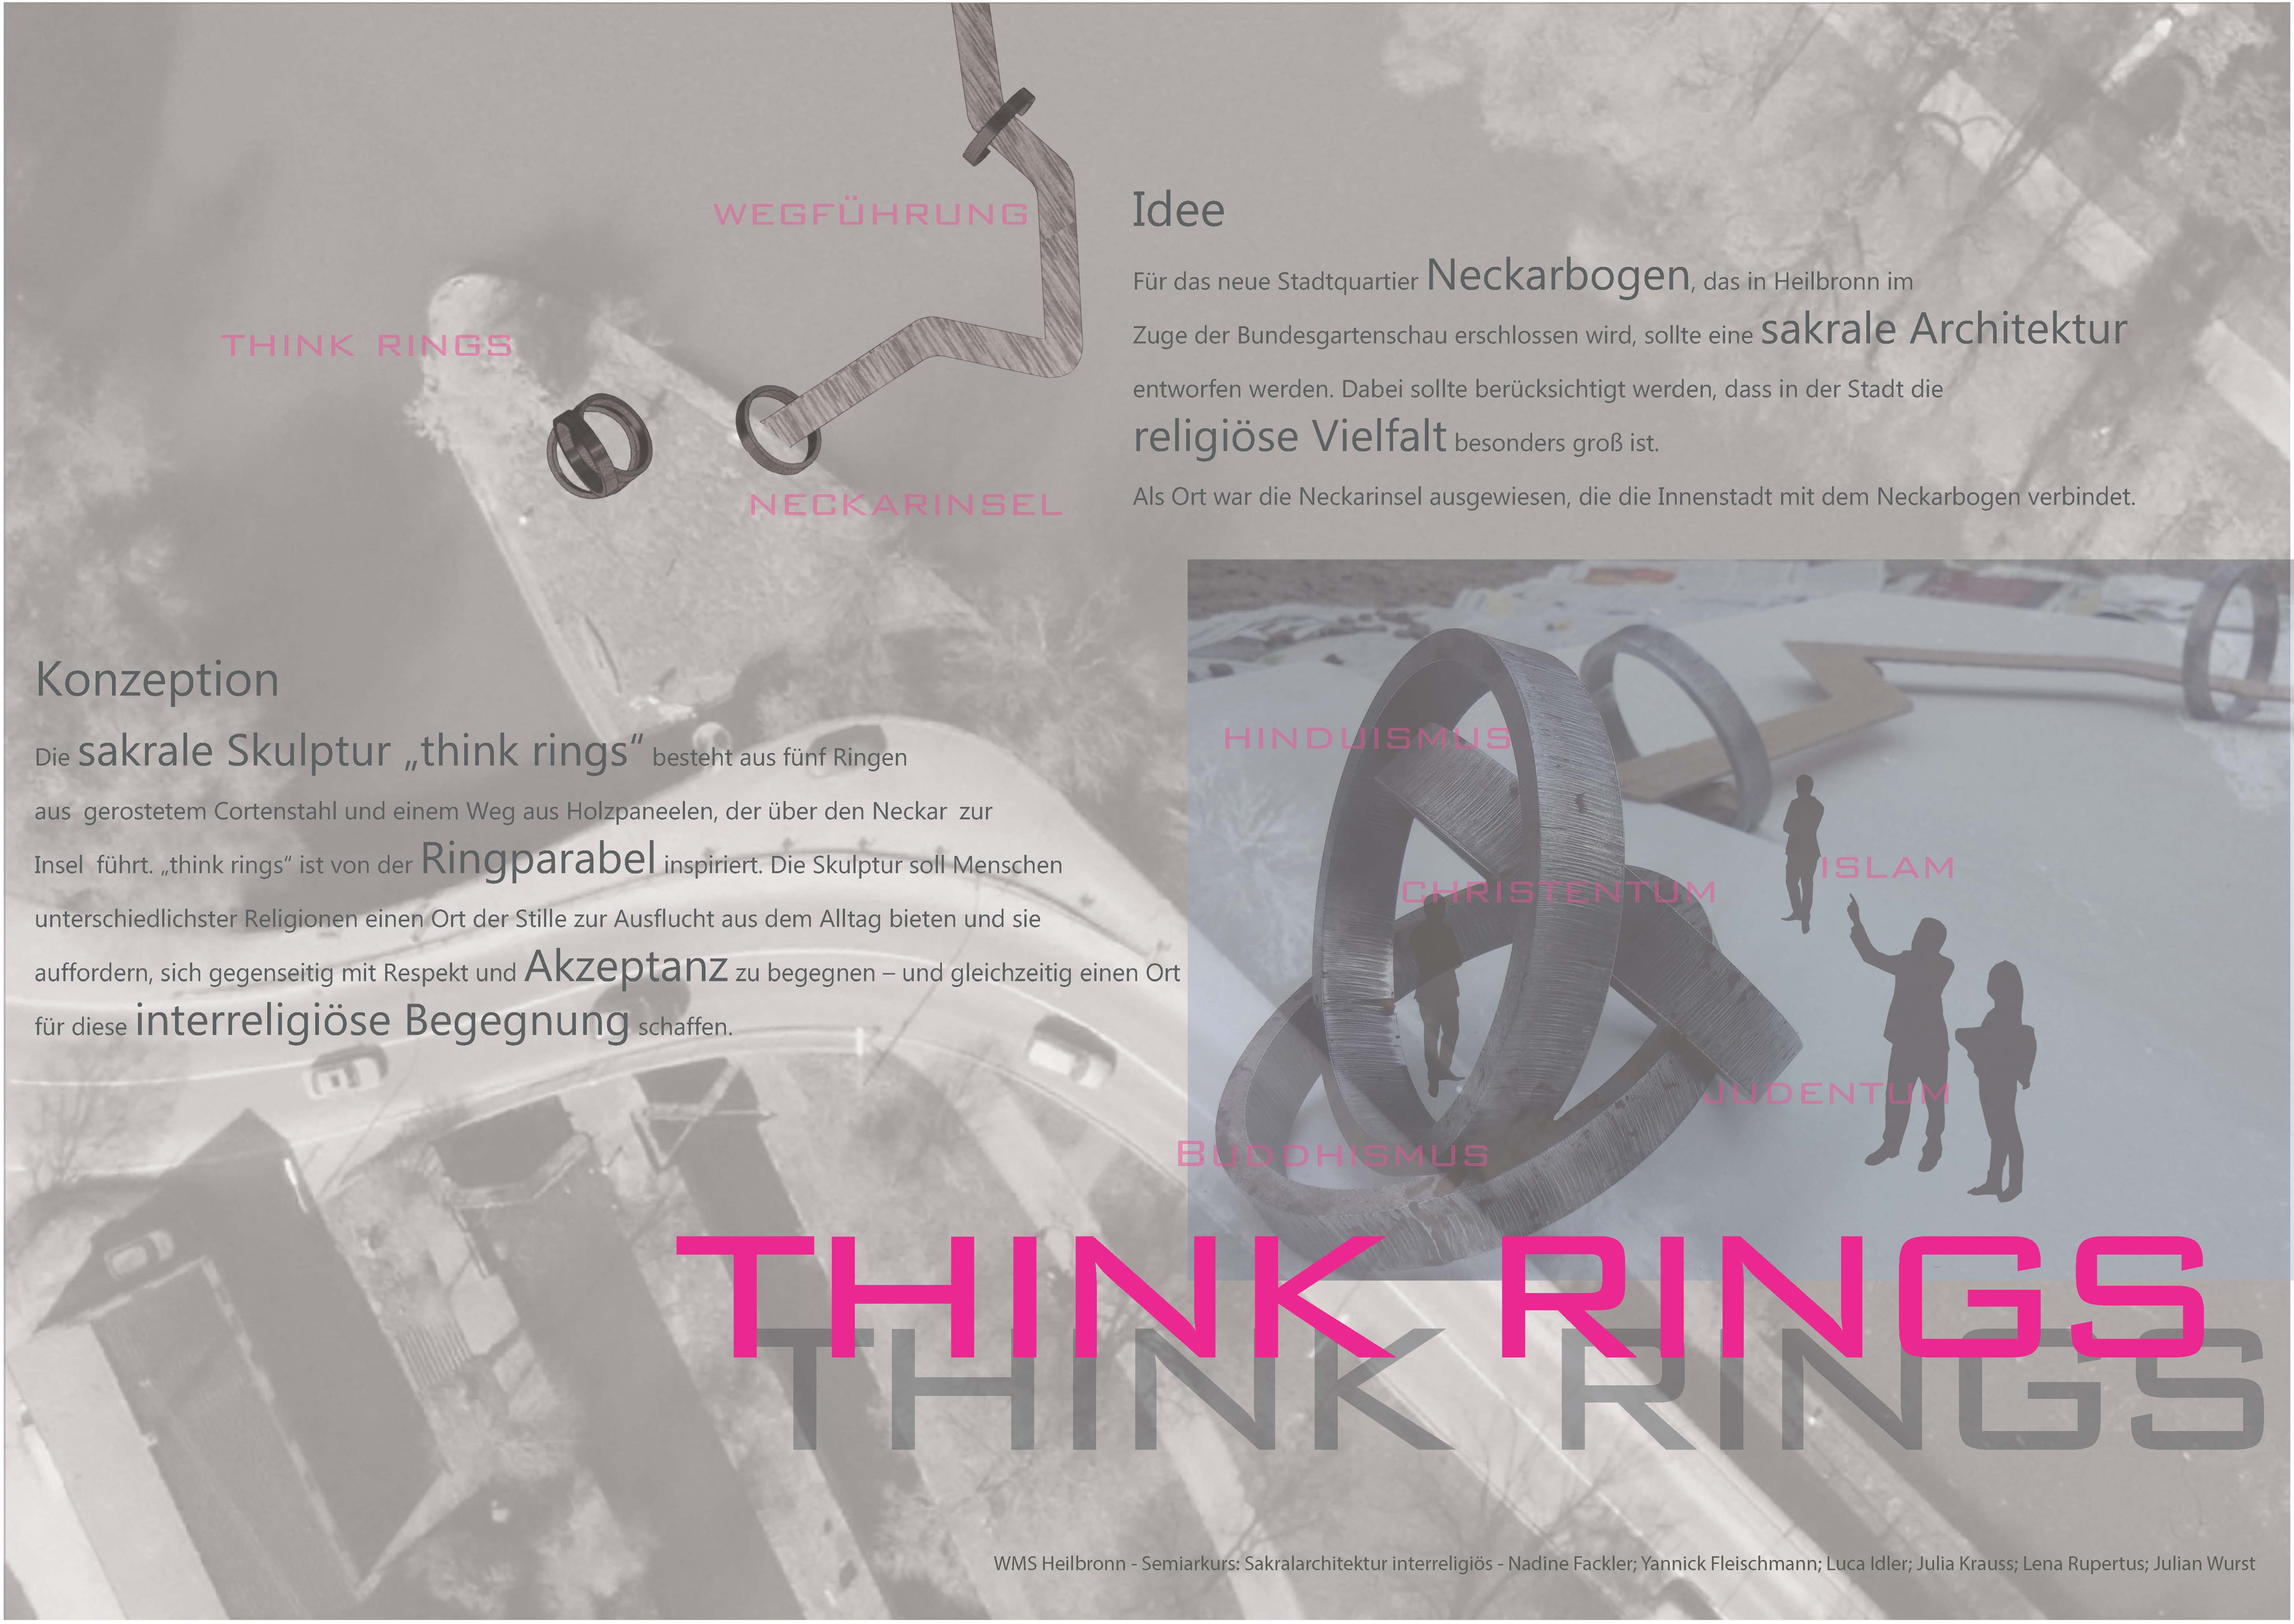 THINK RINGS 1